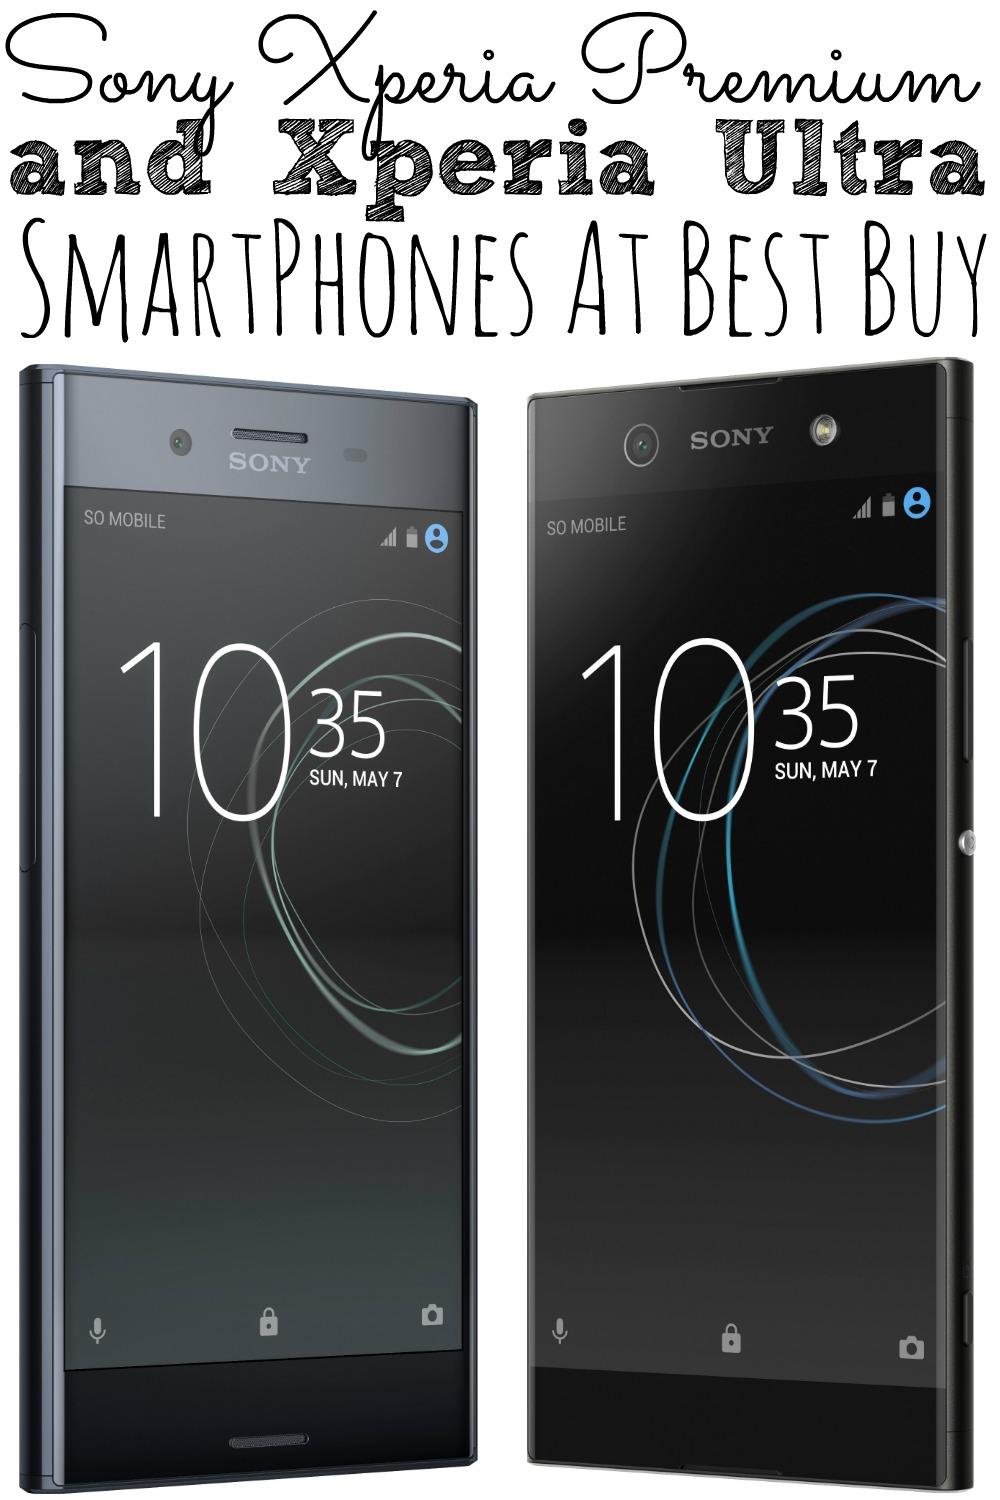 Sony Xperia Premium and Xperia Ultra Smartphones At Best Buy - simplytodaylife.com